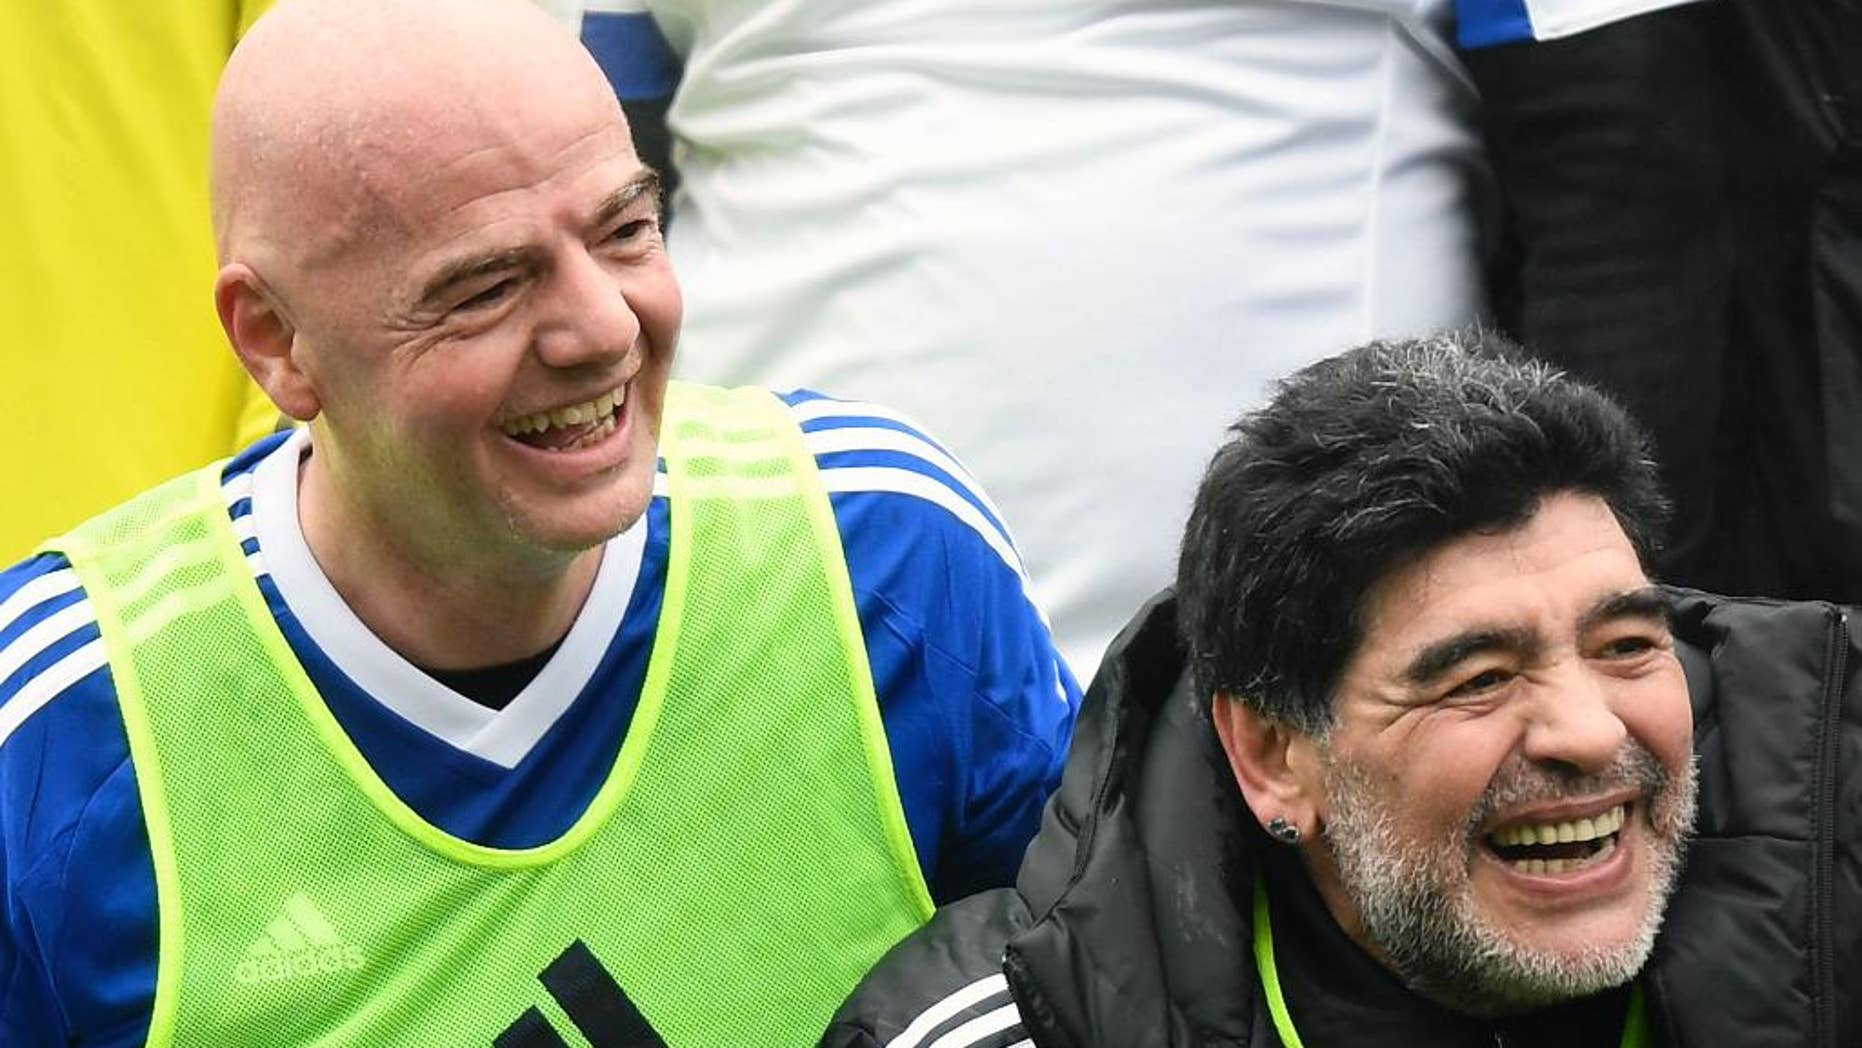 FILE - In this Monday, Jan. 9, 2017 file photo, Argentina's former soccer player Diego Maradona, right, and FIFA President Gianni Infantino share a laugh during a soccer match with FIFA Legends at the home of FIFA in Zurich, Switzerland. FIFA's peacemaking with Diego Maradona has led to an ambassador's role for the Argentina great, announced late Thursday Feb. 9, 2017 by Maradona. (Walter Bieri/Keystone via AP, File)